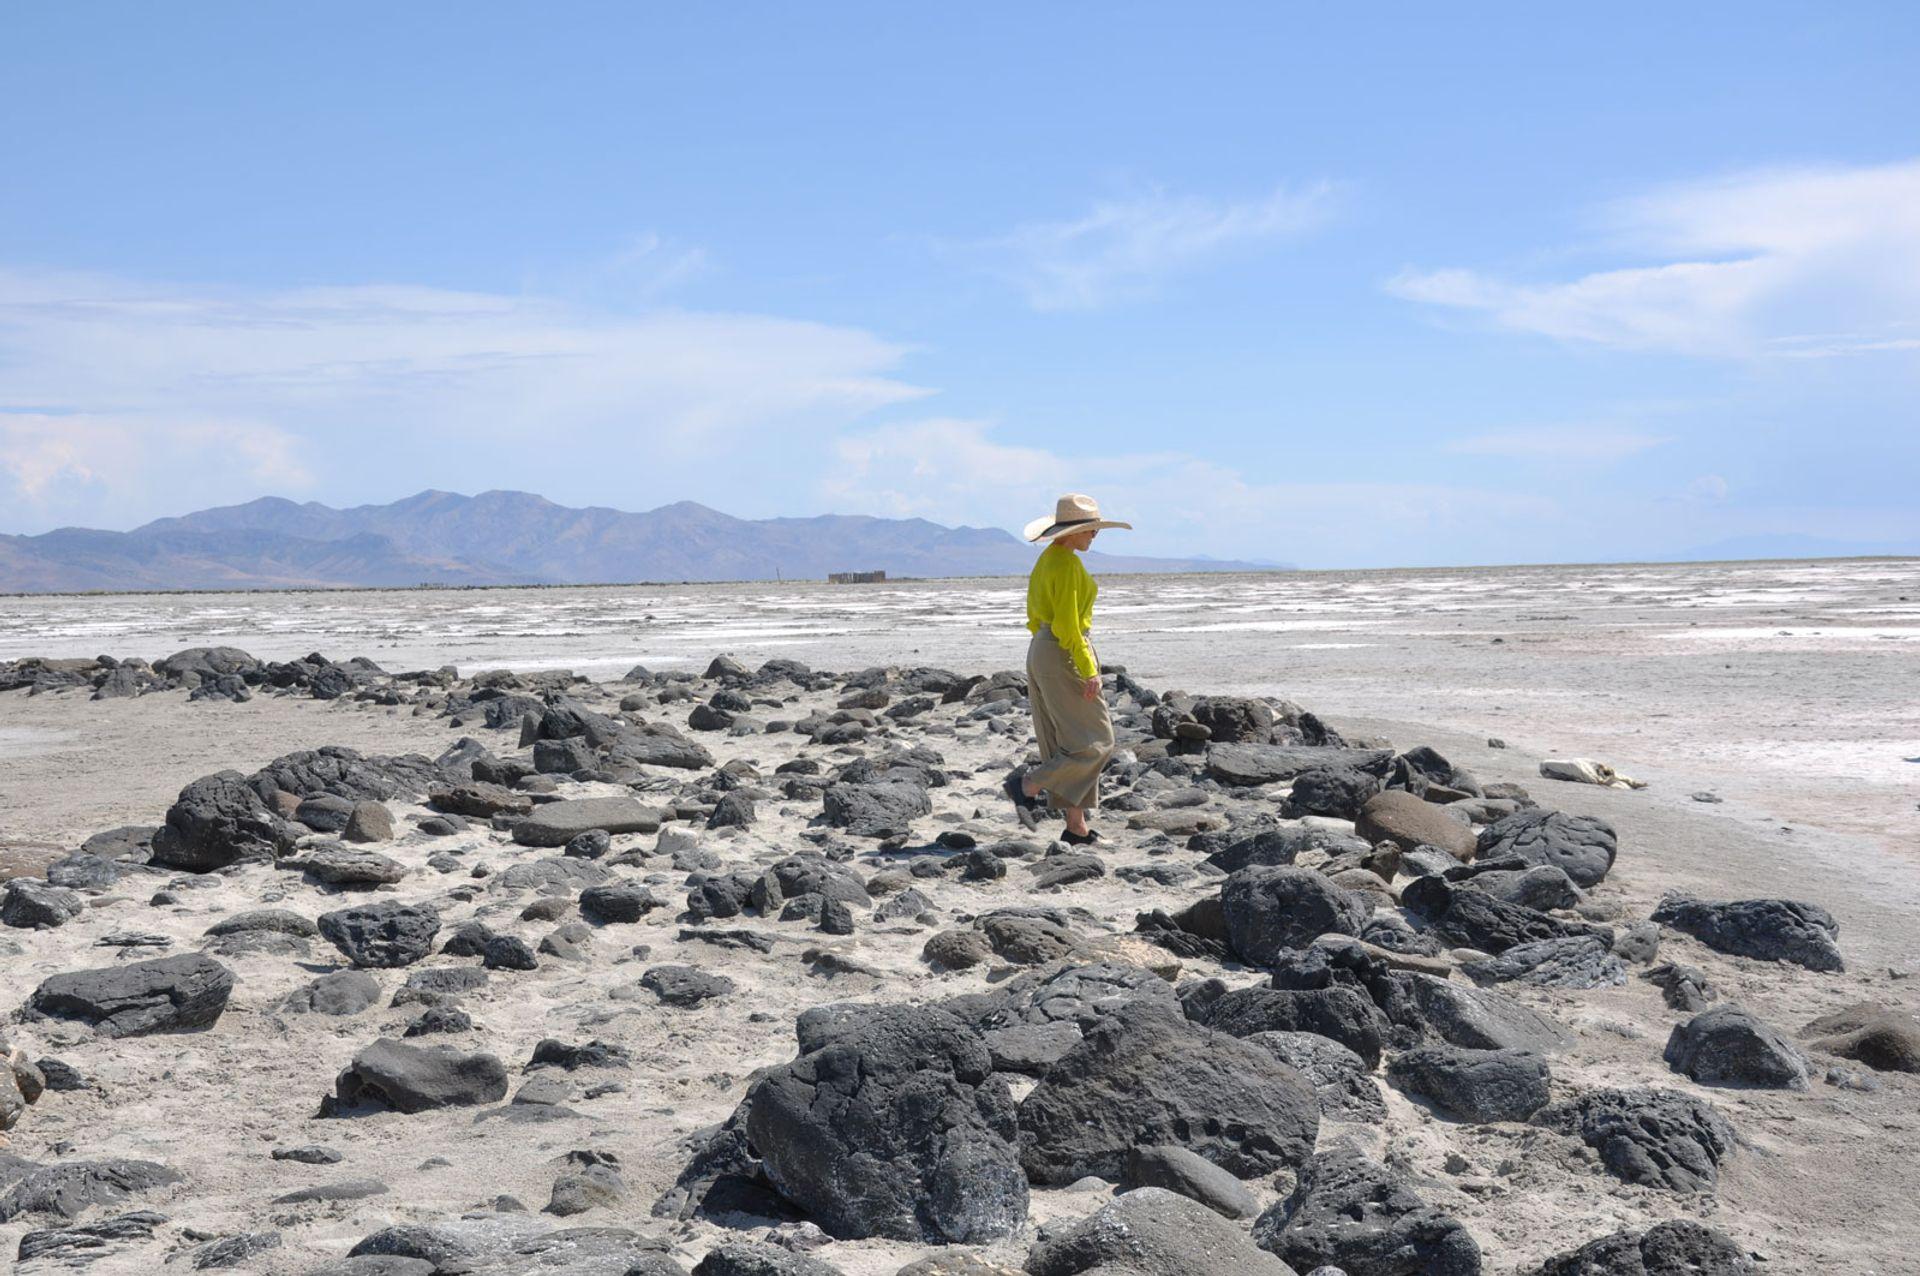 Lisa Le Feuvre at Robert Smithson's Spiral Jetty (1971)